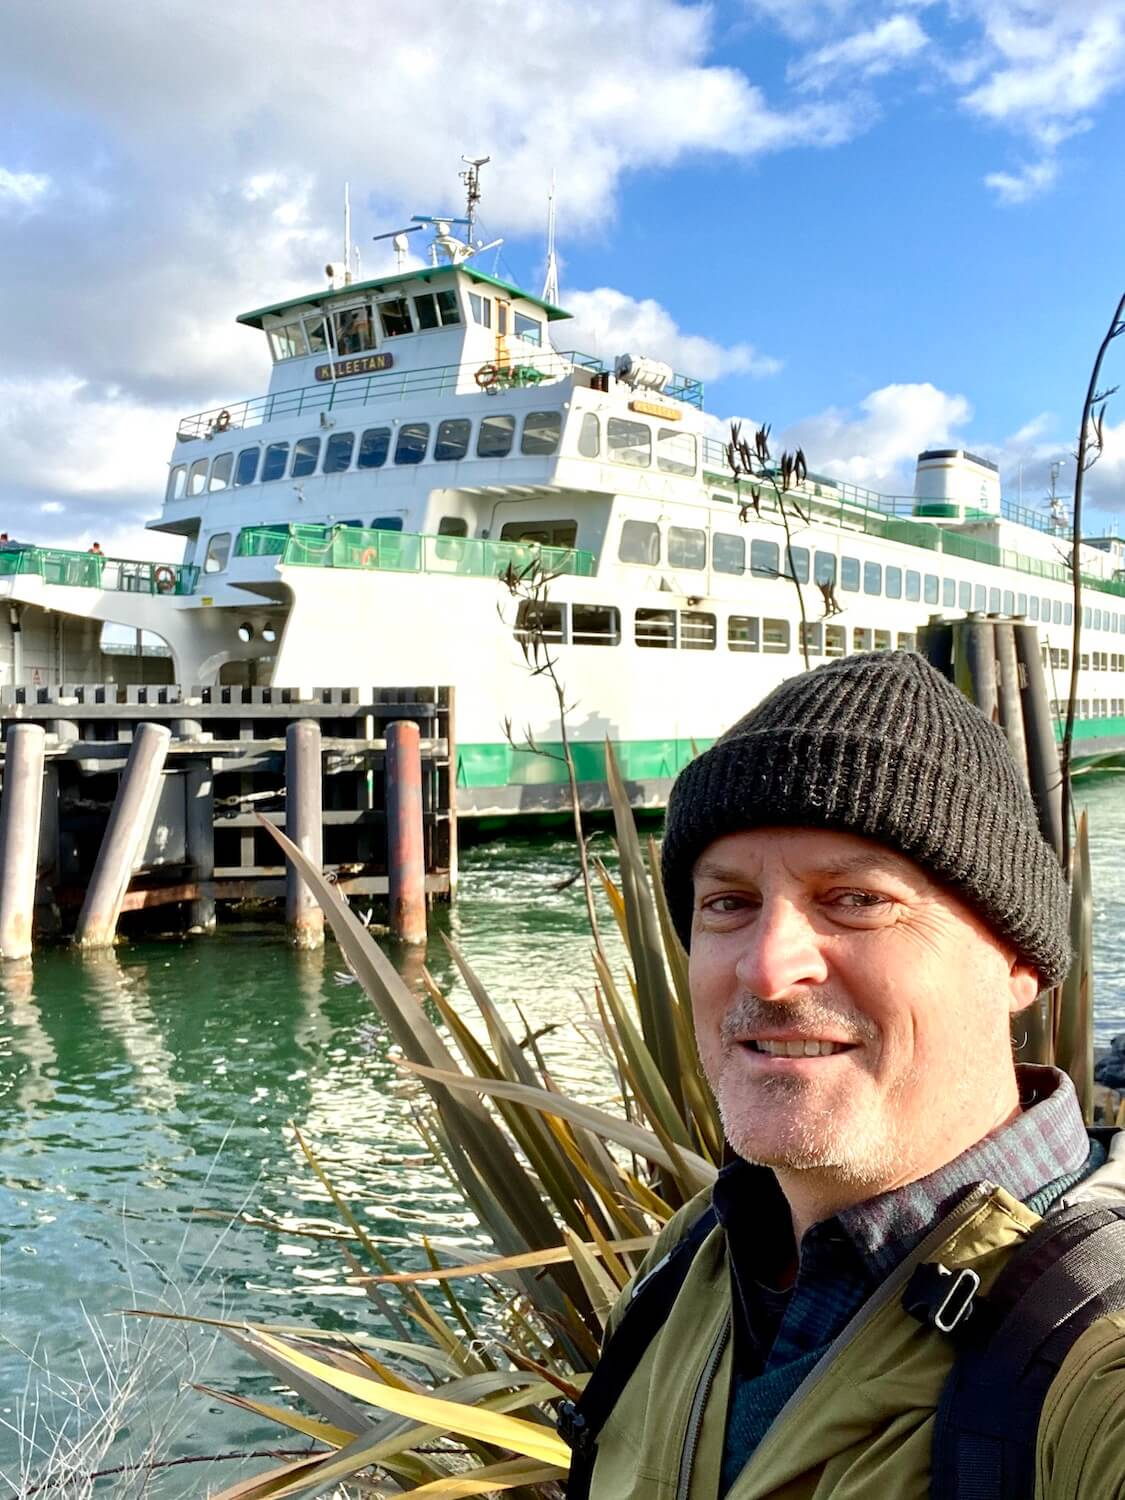 Matthew Kessi stands on the bank of the water with a Washington State Ferry in the background.  He's smiling and wearing a gray hat.  A ferry ride is a great way to spend time while on a long layover at Seatac Airport.